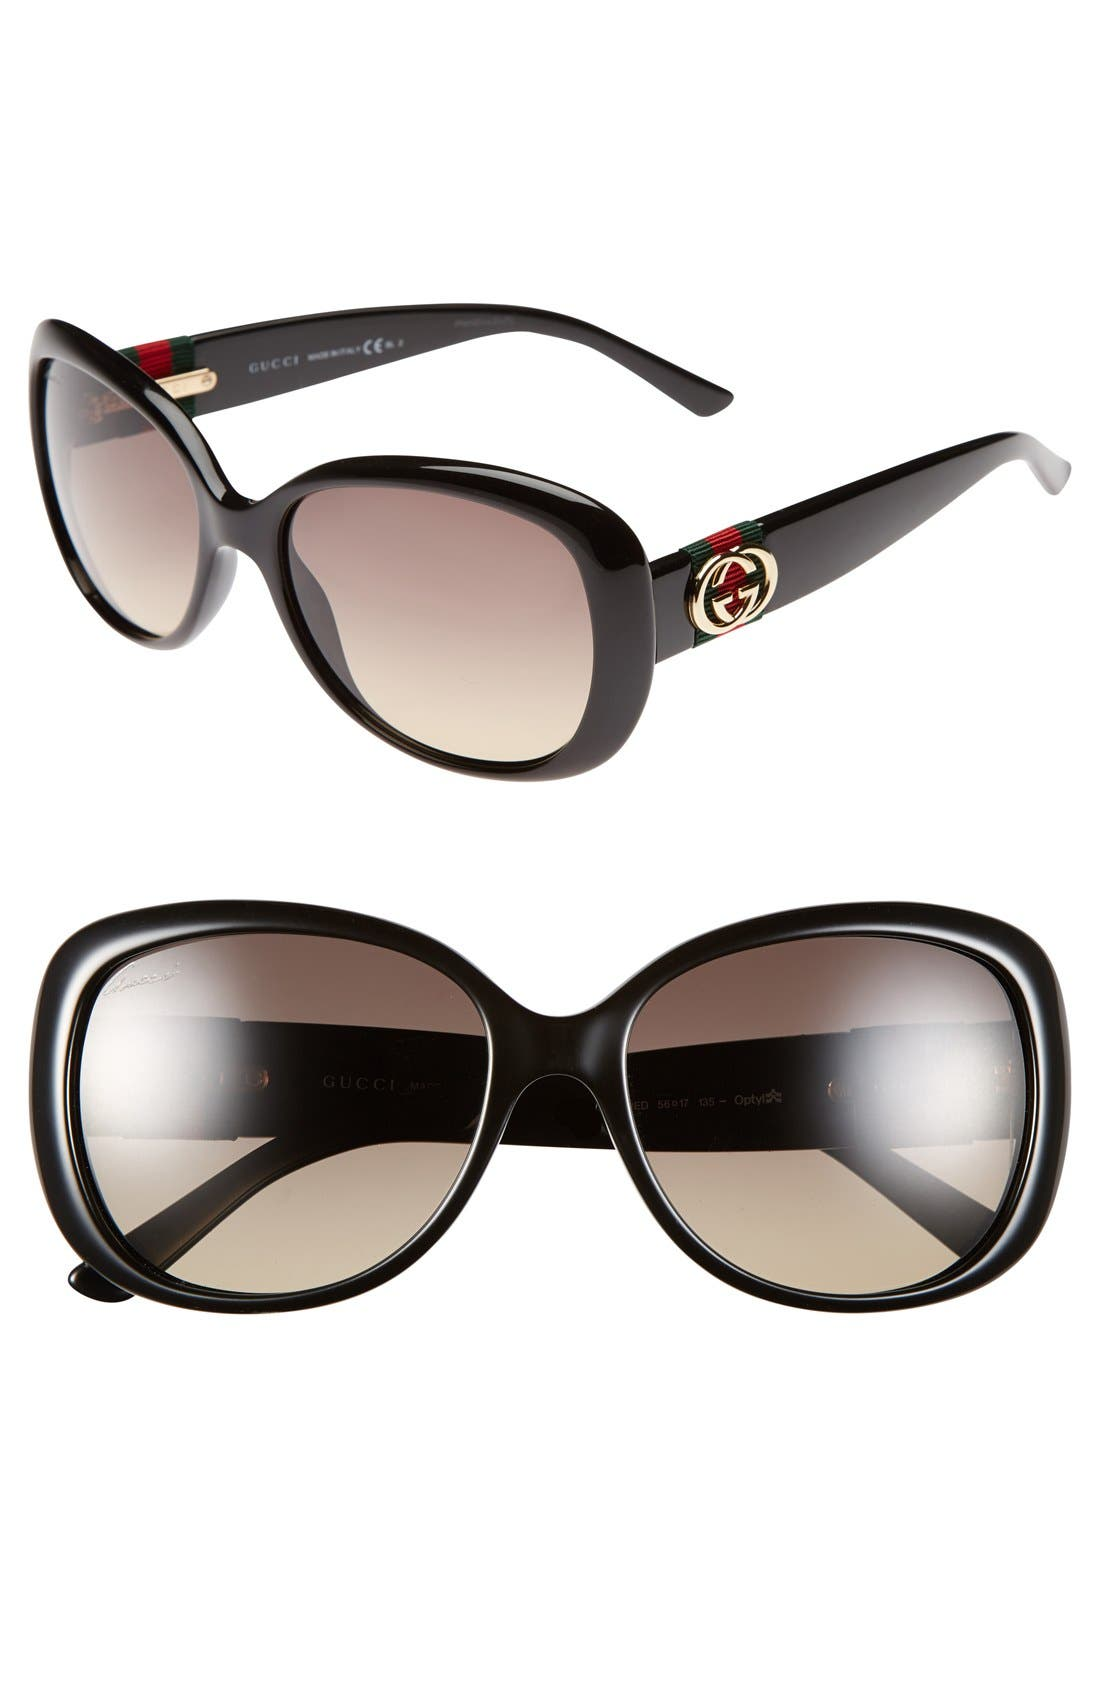 Alternate Image 1 Selected - Gucci 56mm Oversized Sunglasses